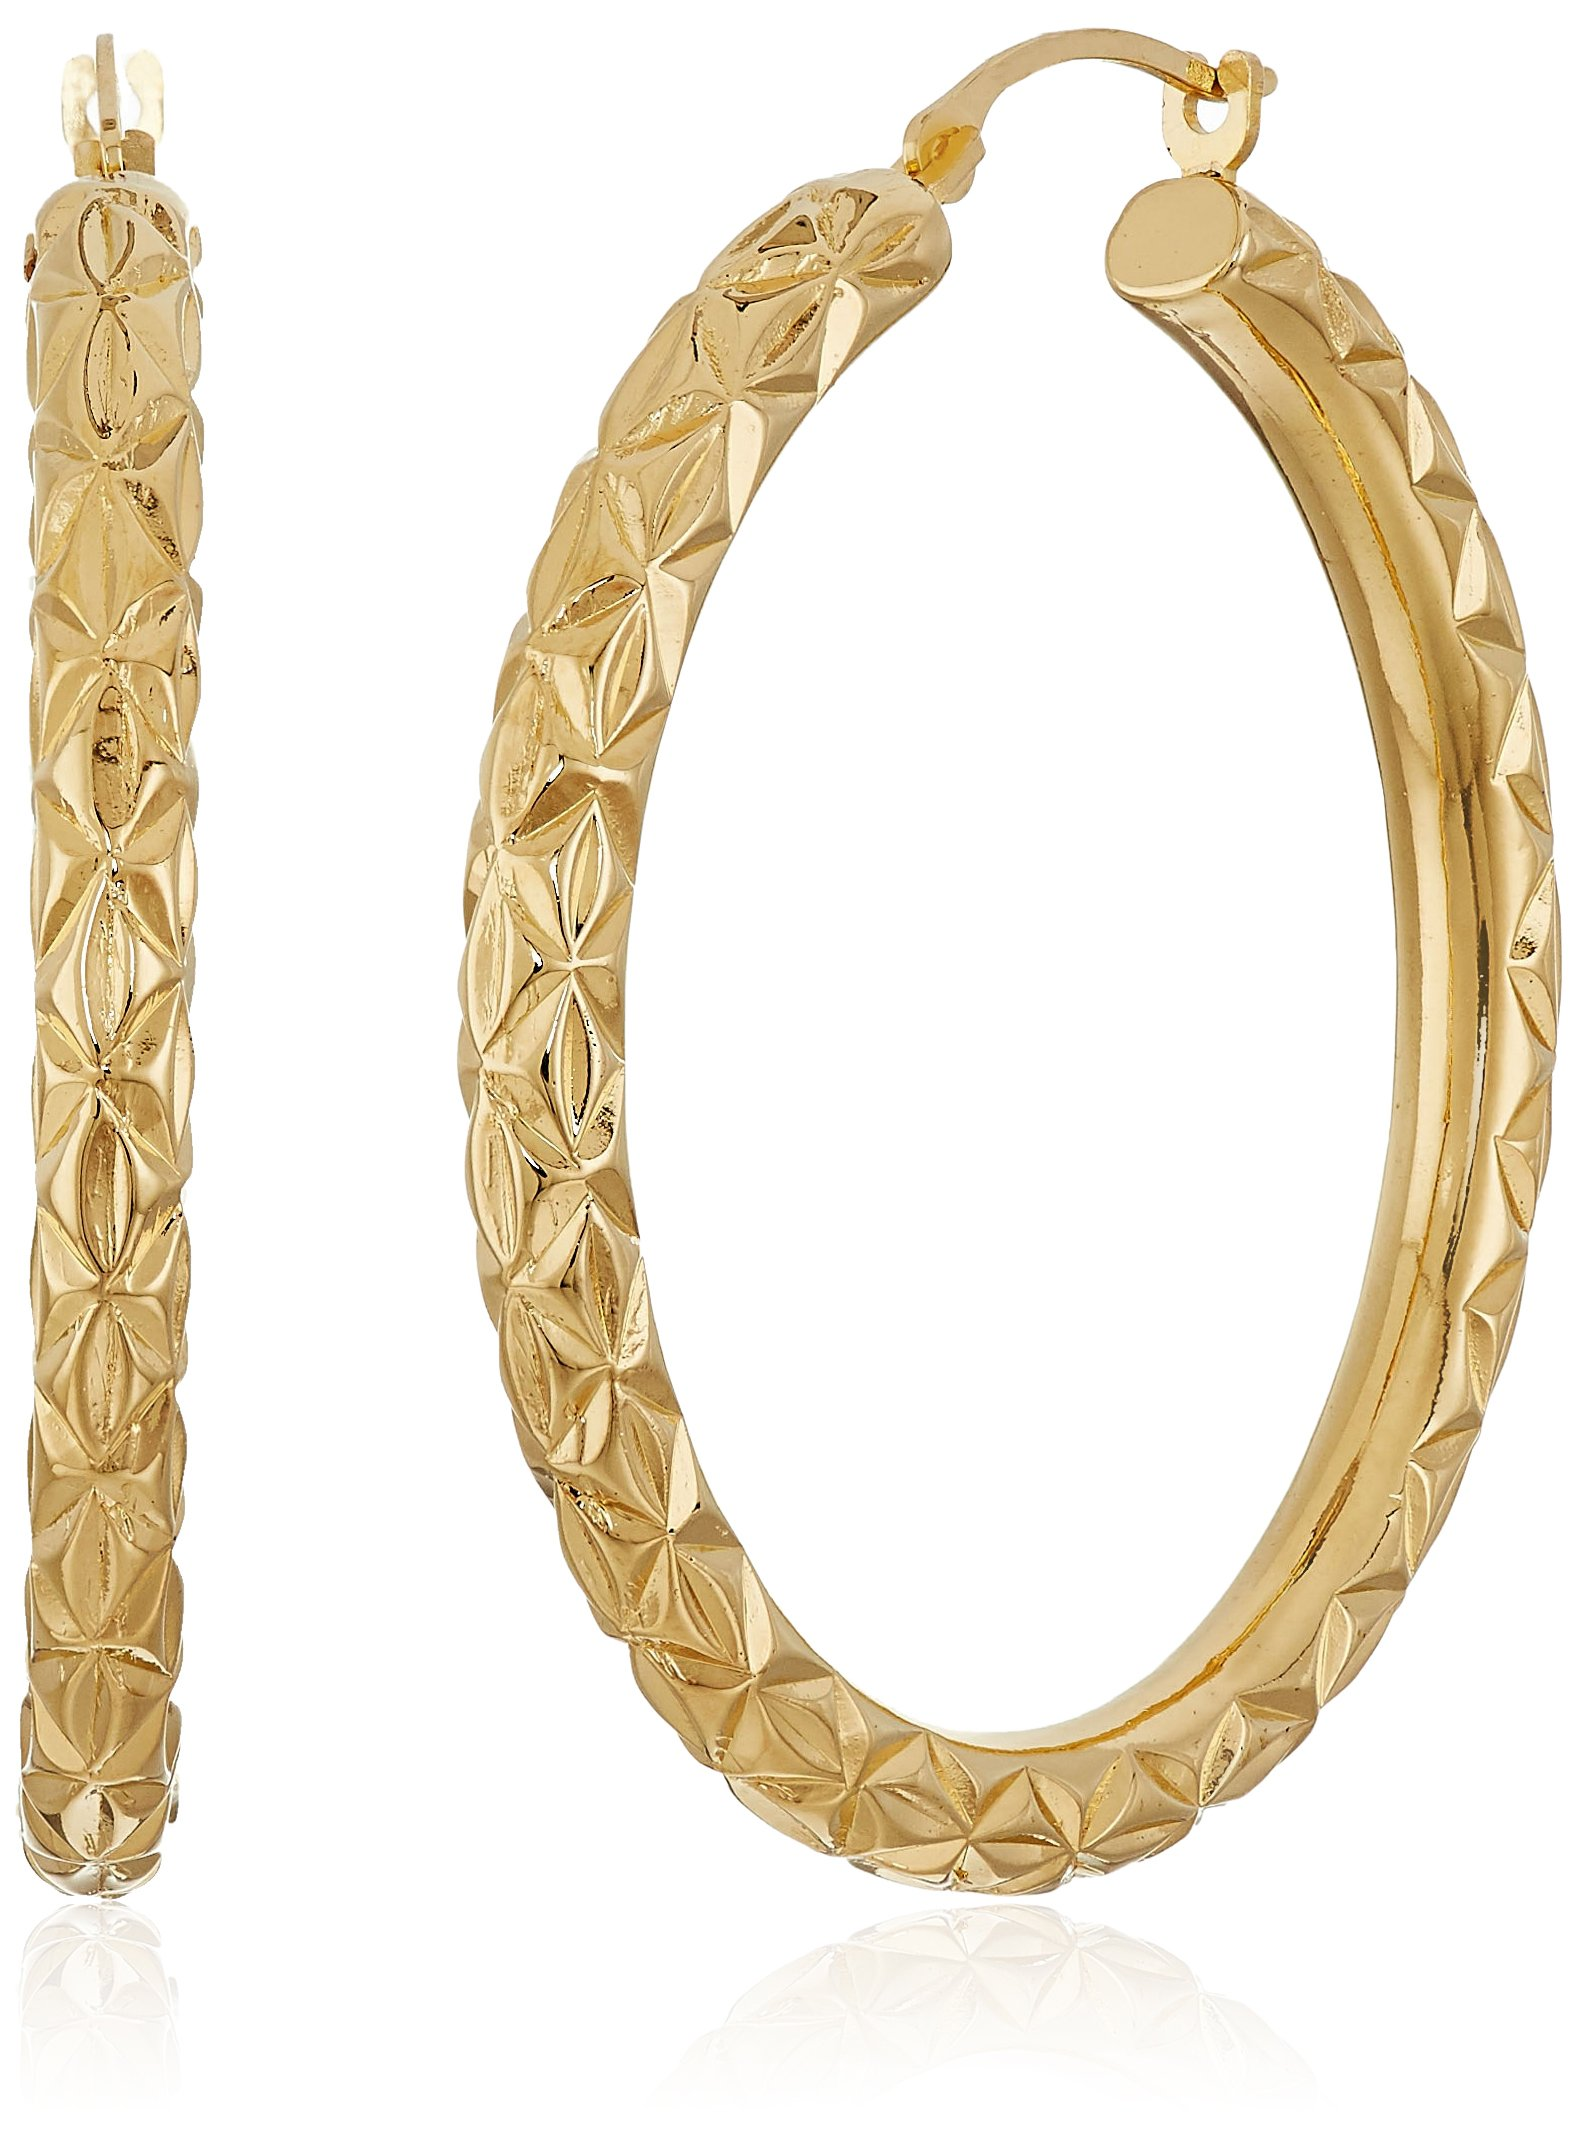 14K Yellow Gold Nano Diamond Resin Diamond Cut and Textured Hoop Earrings